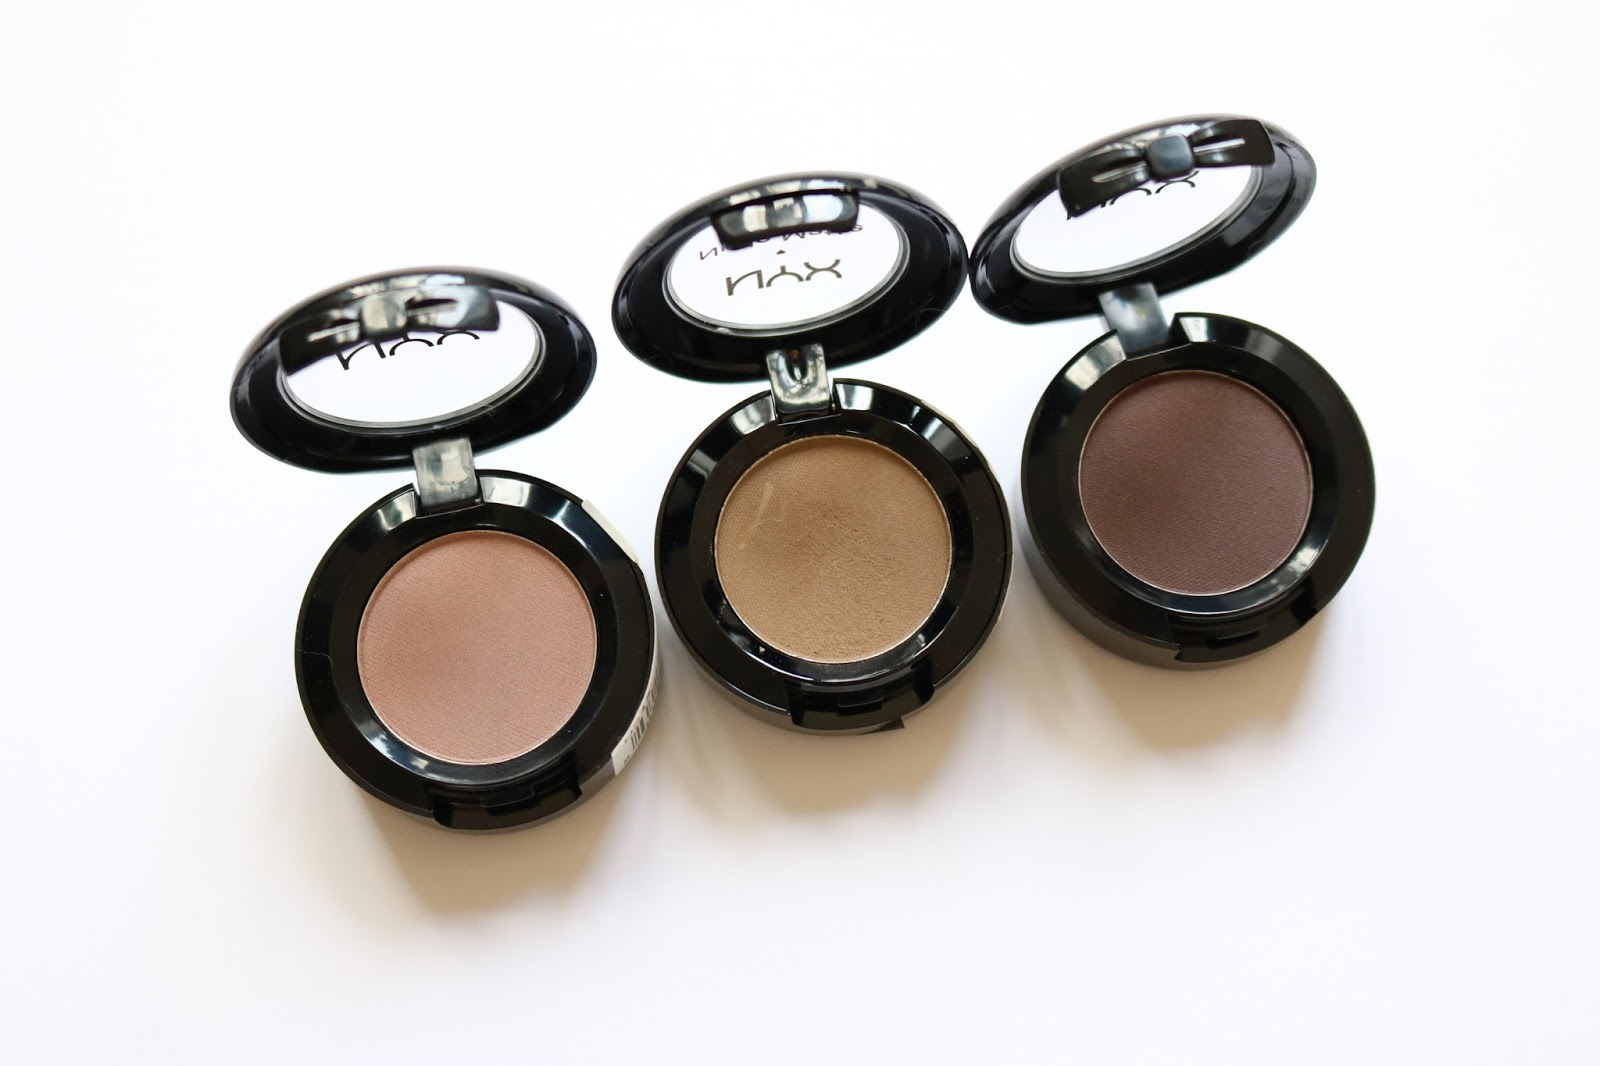 NYX eyeshadows